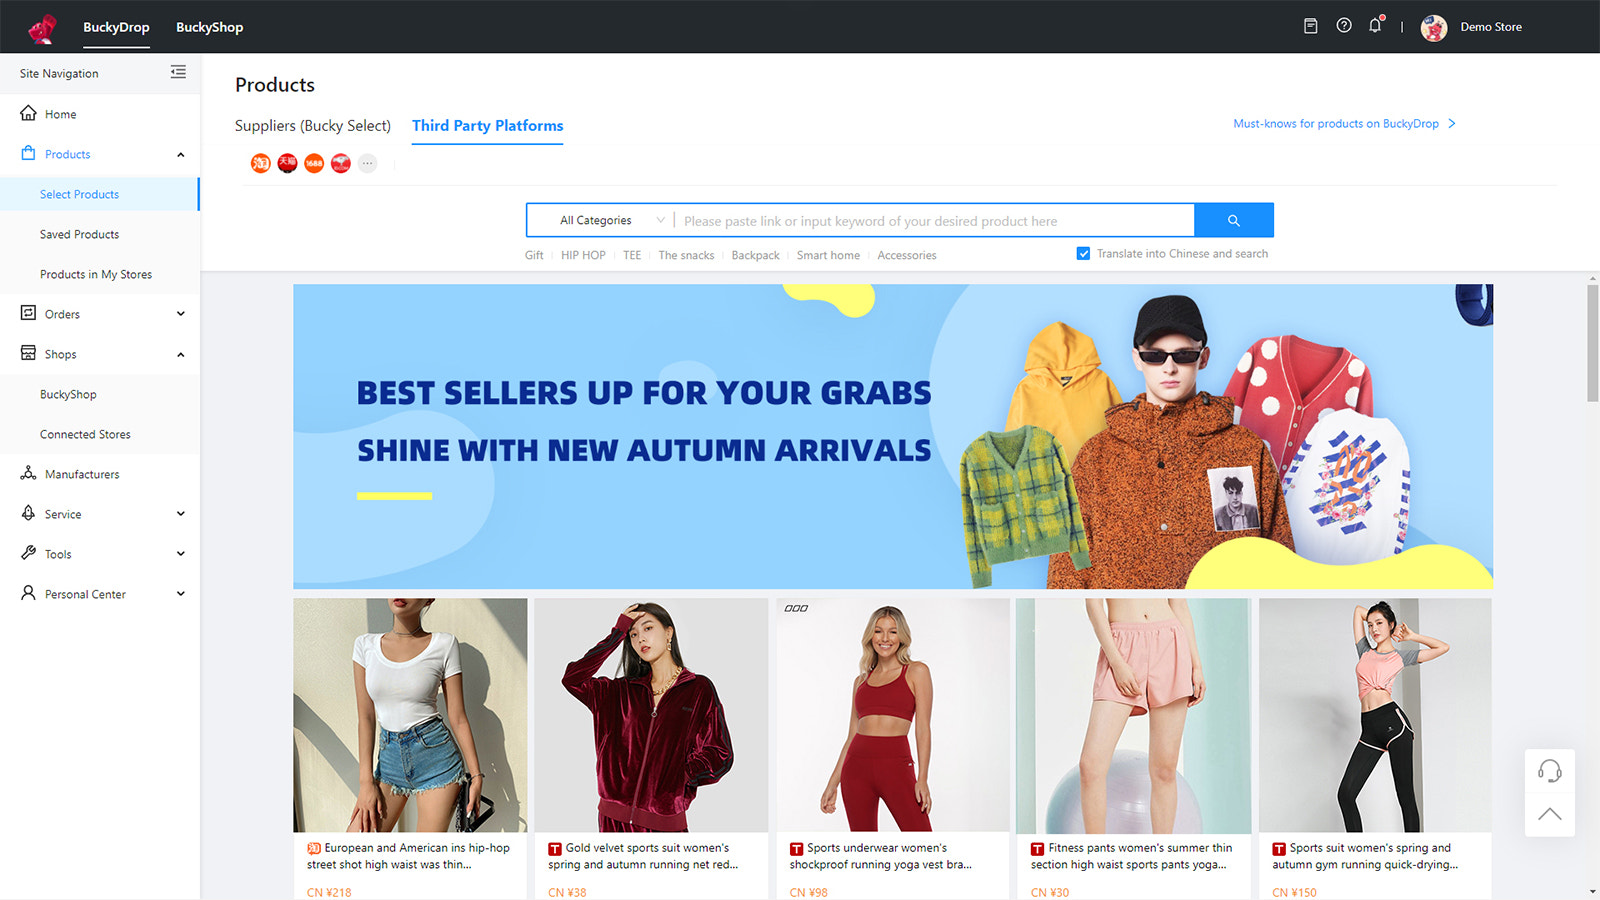 buckydrop-dropshipping-third-party-chinese-products